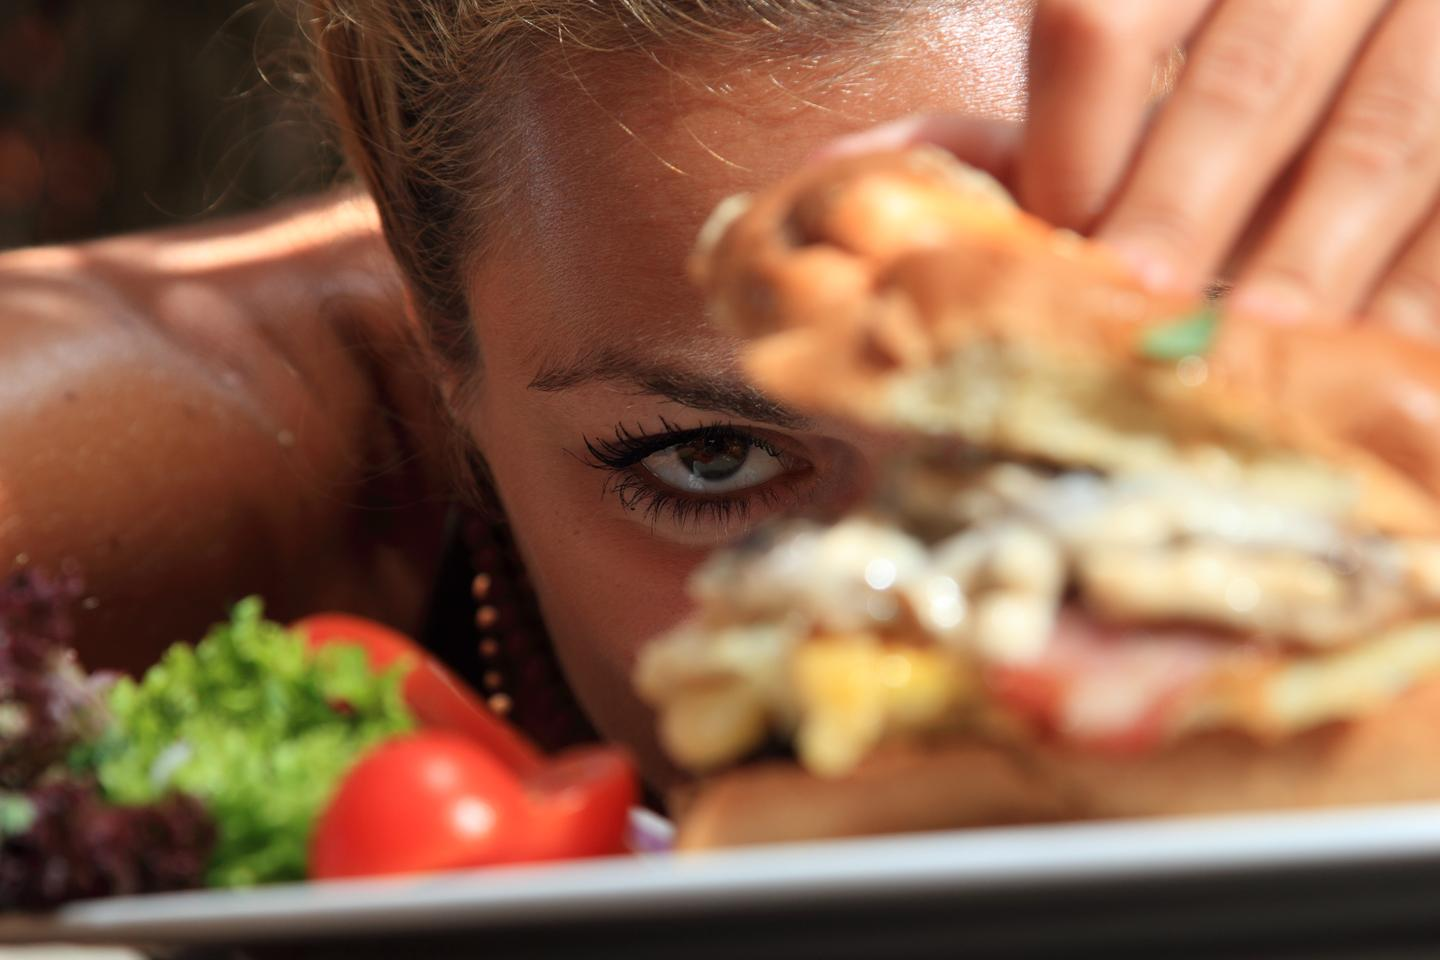 How healthy is your diet? A new test is being developed to provide an objective answer in just five minutes